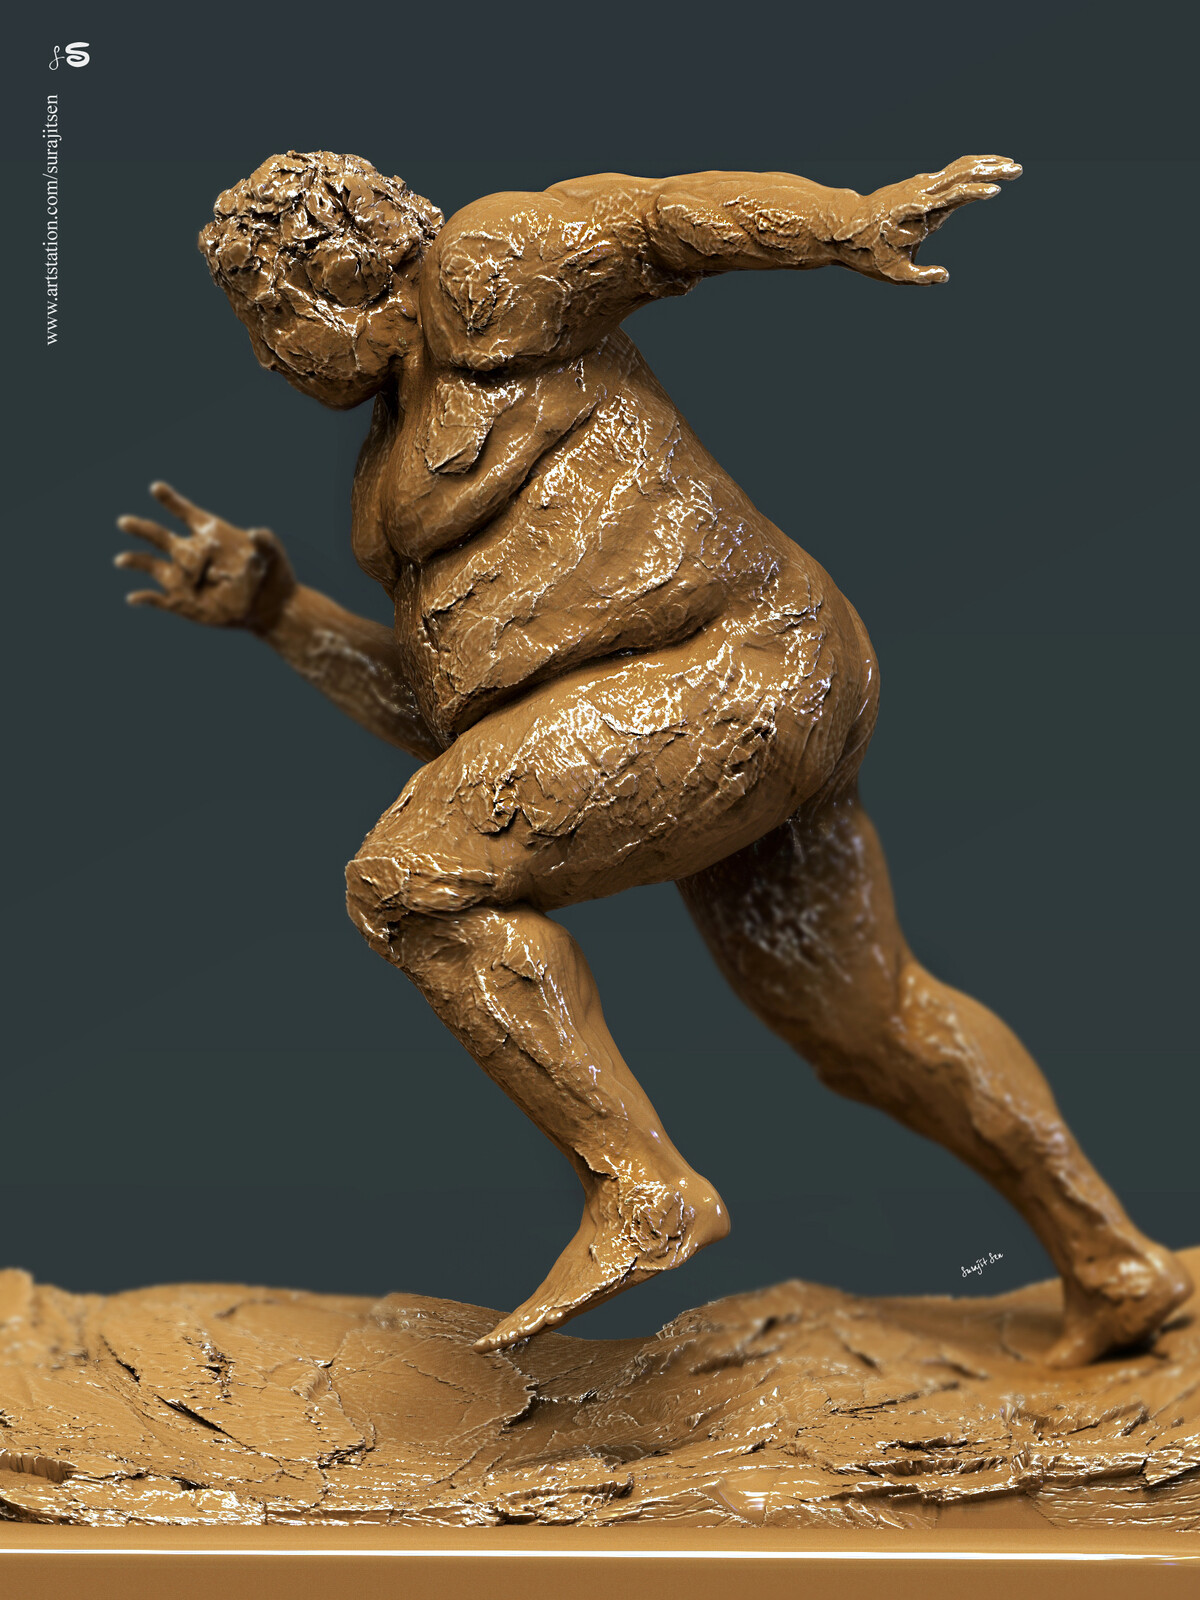 Running …